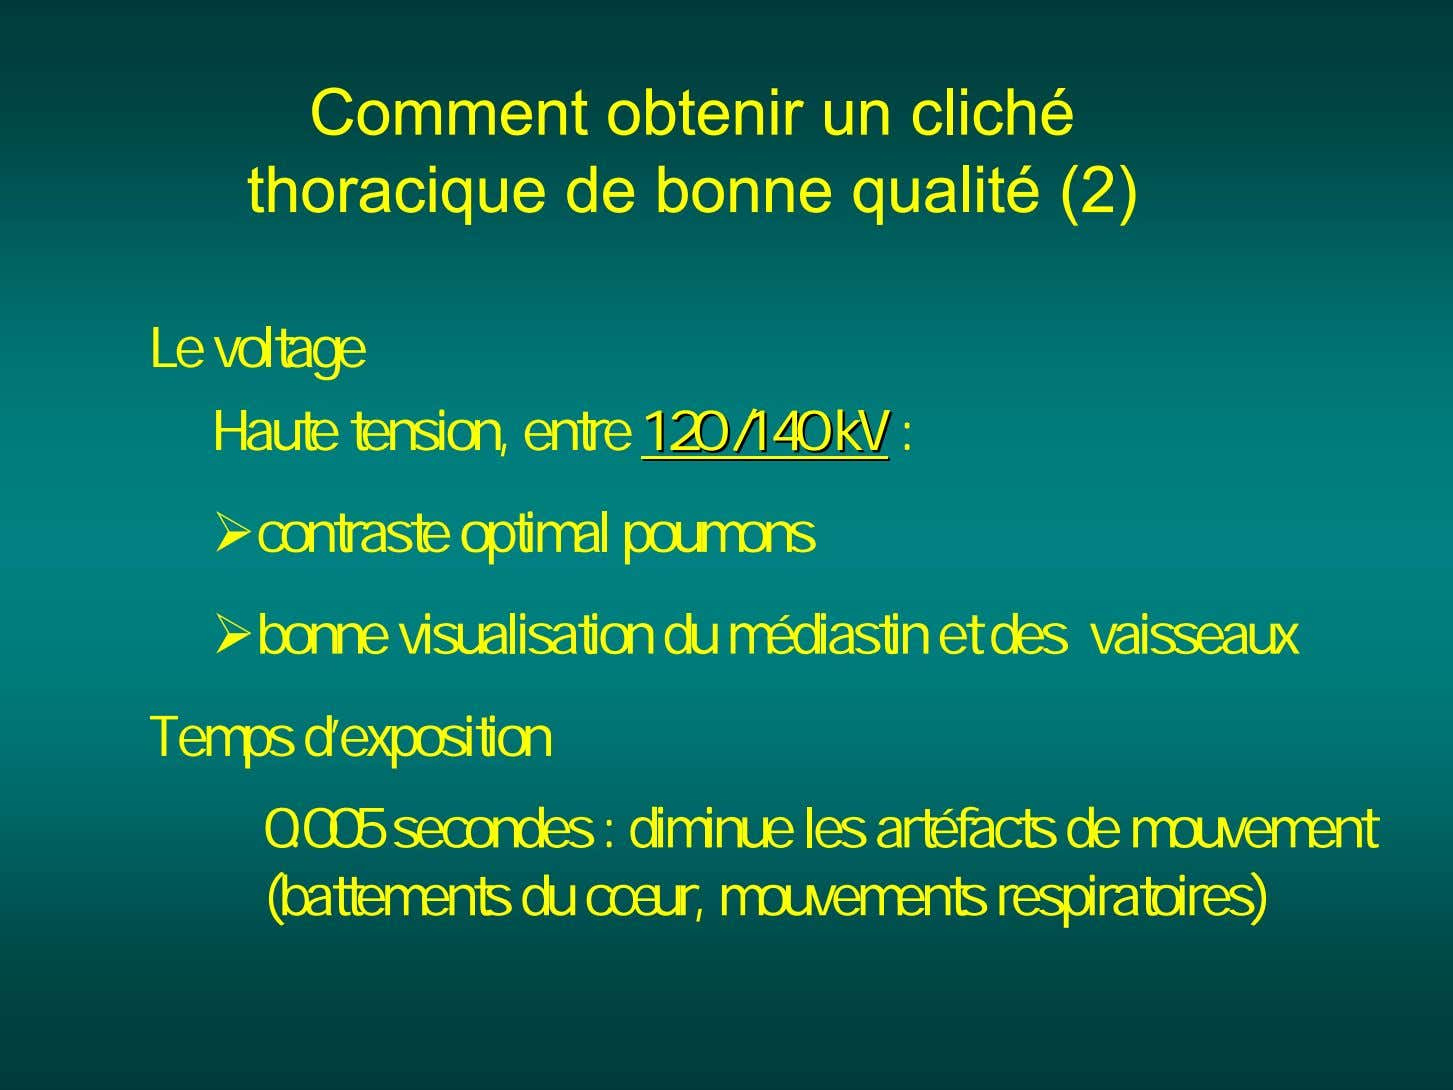 Comment obtenir un cliché thoracique de bonne qualité (2) Le voltage Haute tension, entre 120120